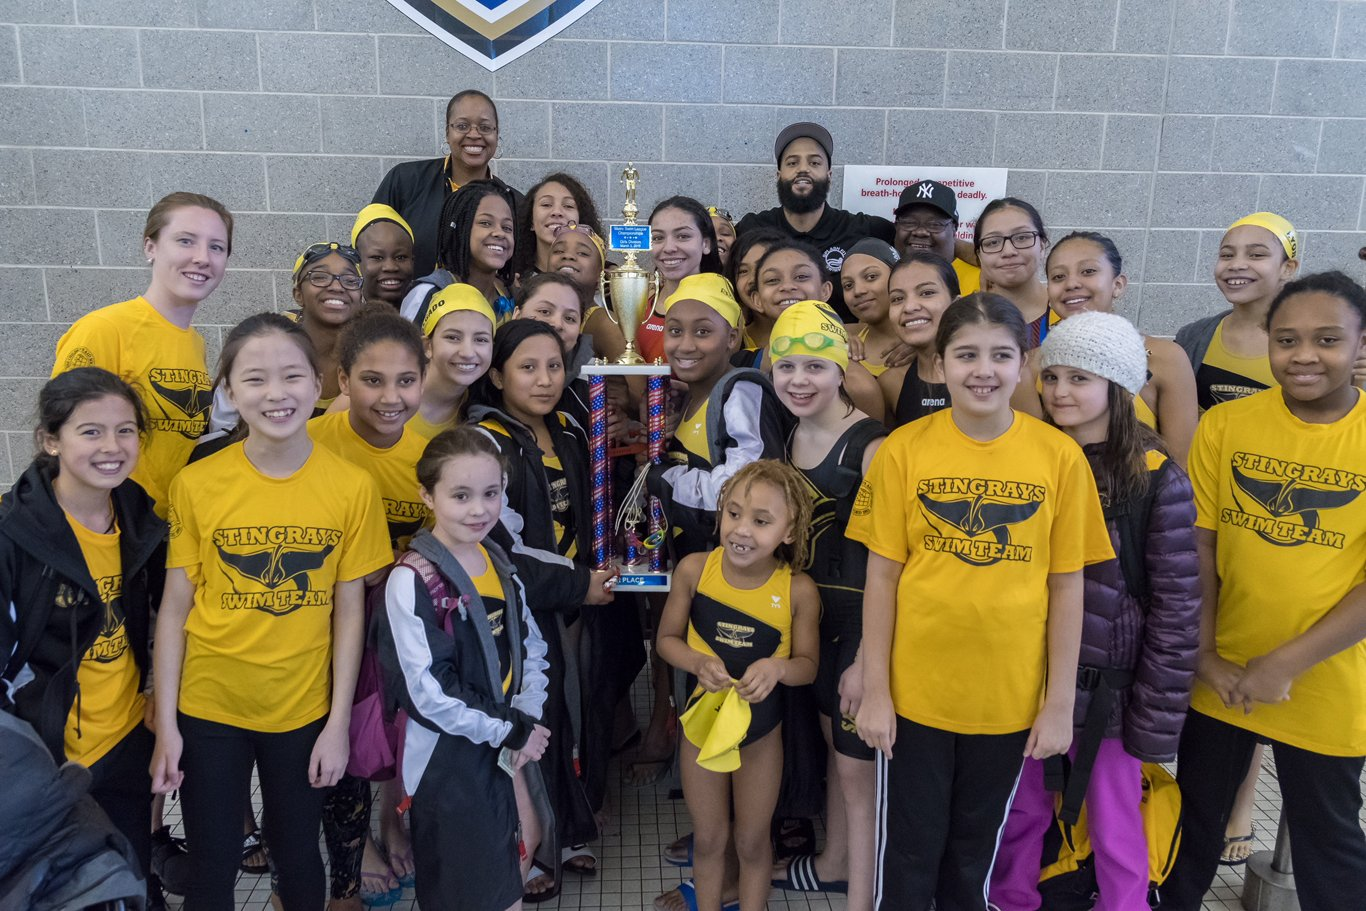 2018 Milbank Stingrays Swim Team wins league championships